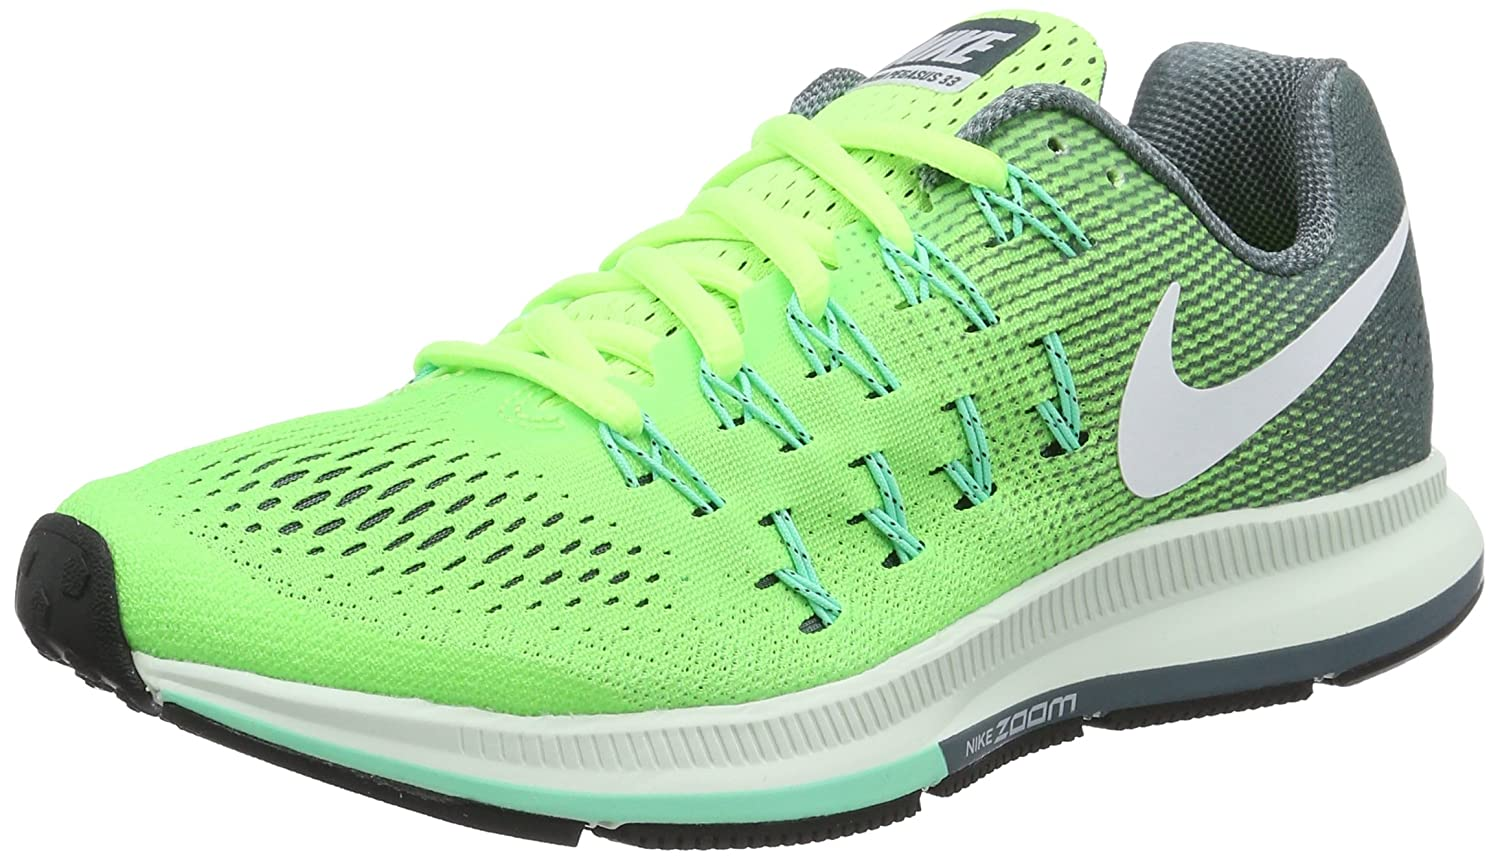 NIKE Women's Air Zoom Pegasus 33 B01CIYT33K 11 B(M) US|Ghost Green/White/Hasta/Green Glow